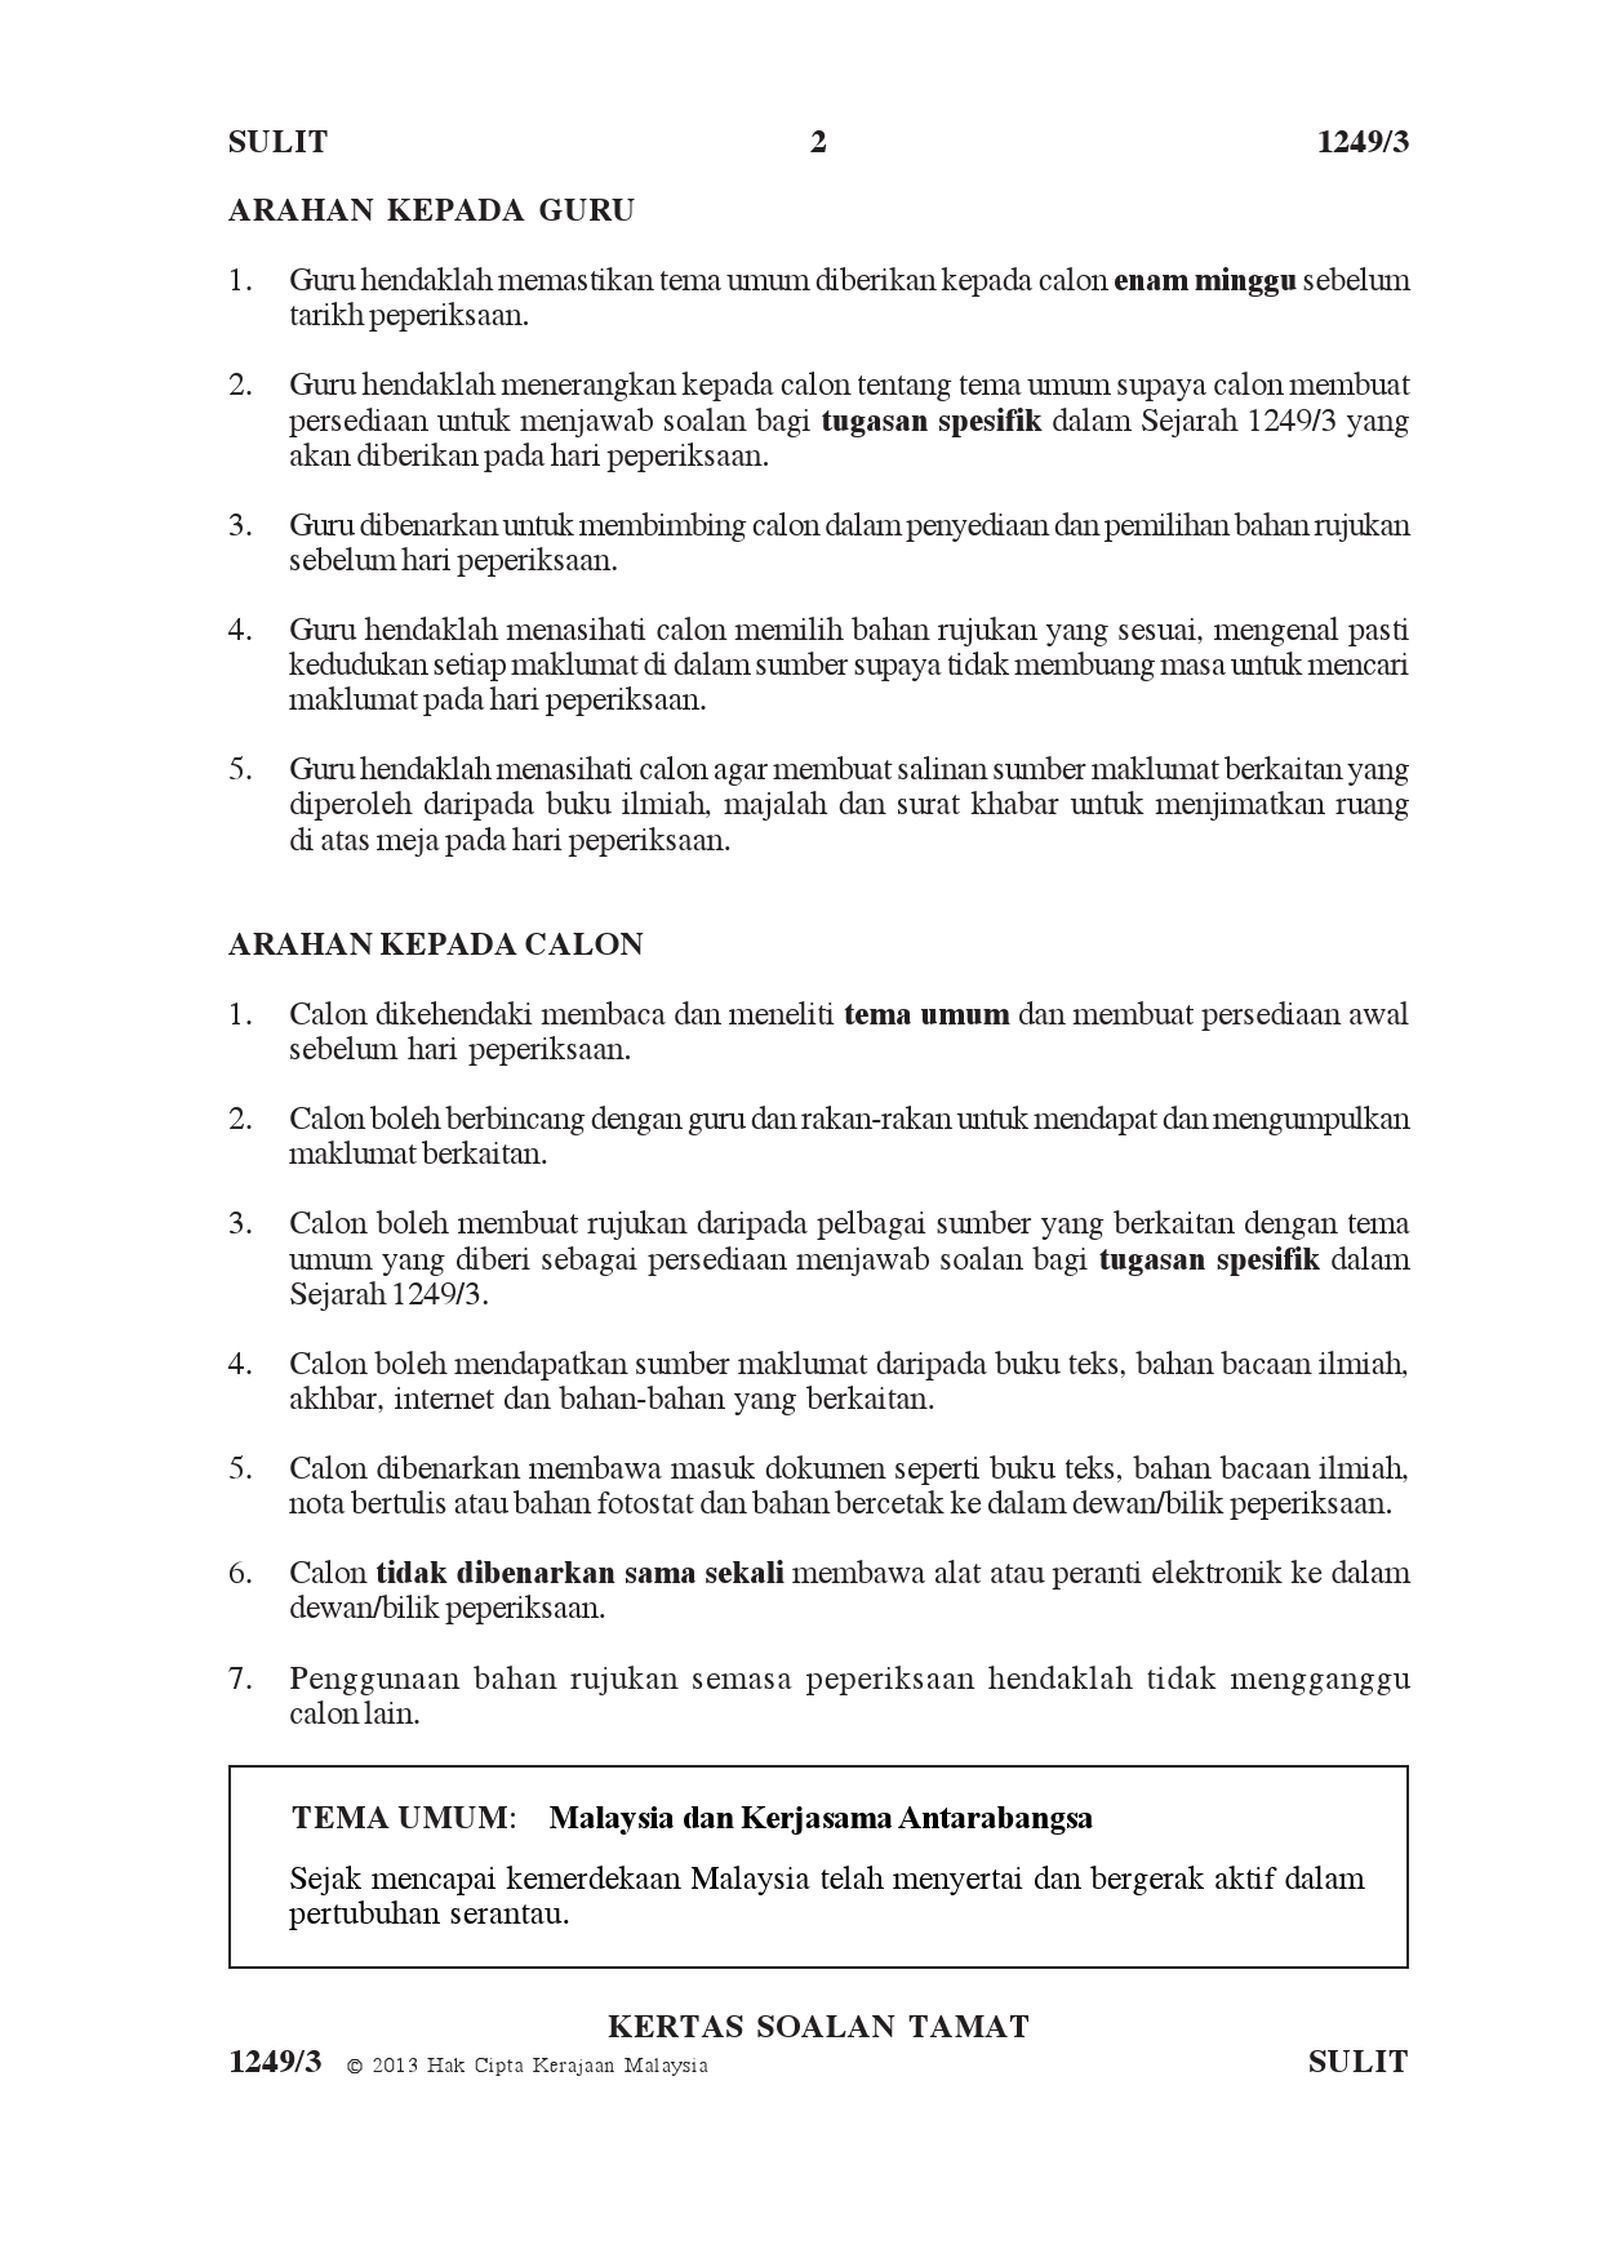 Best Refrence New Employee Offer Letter format By